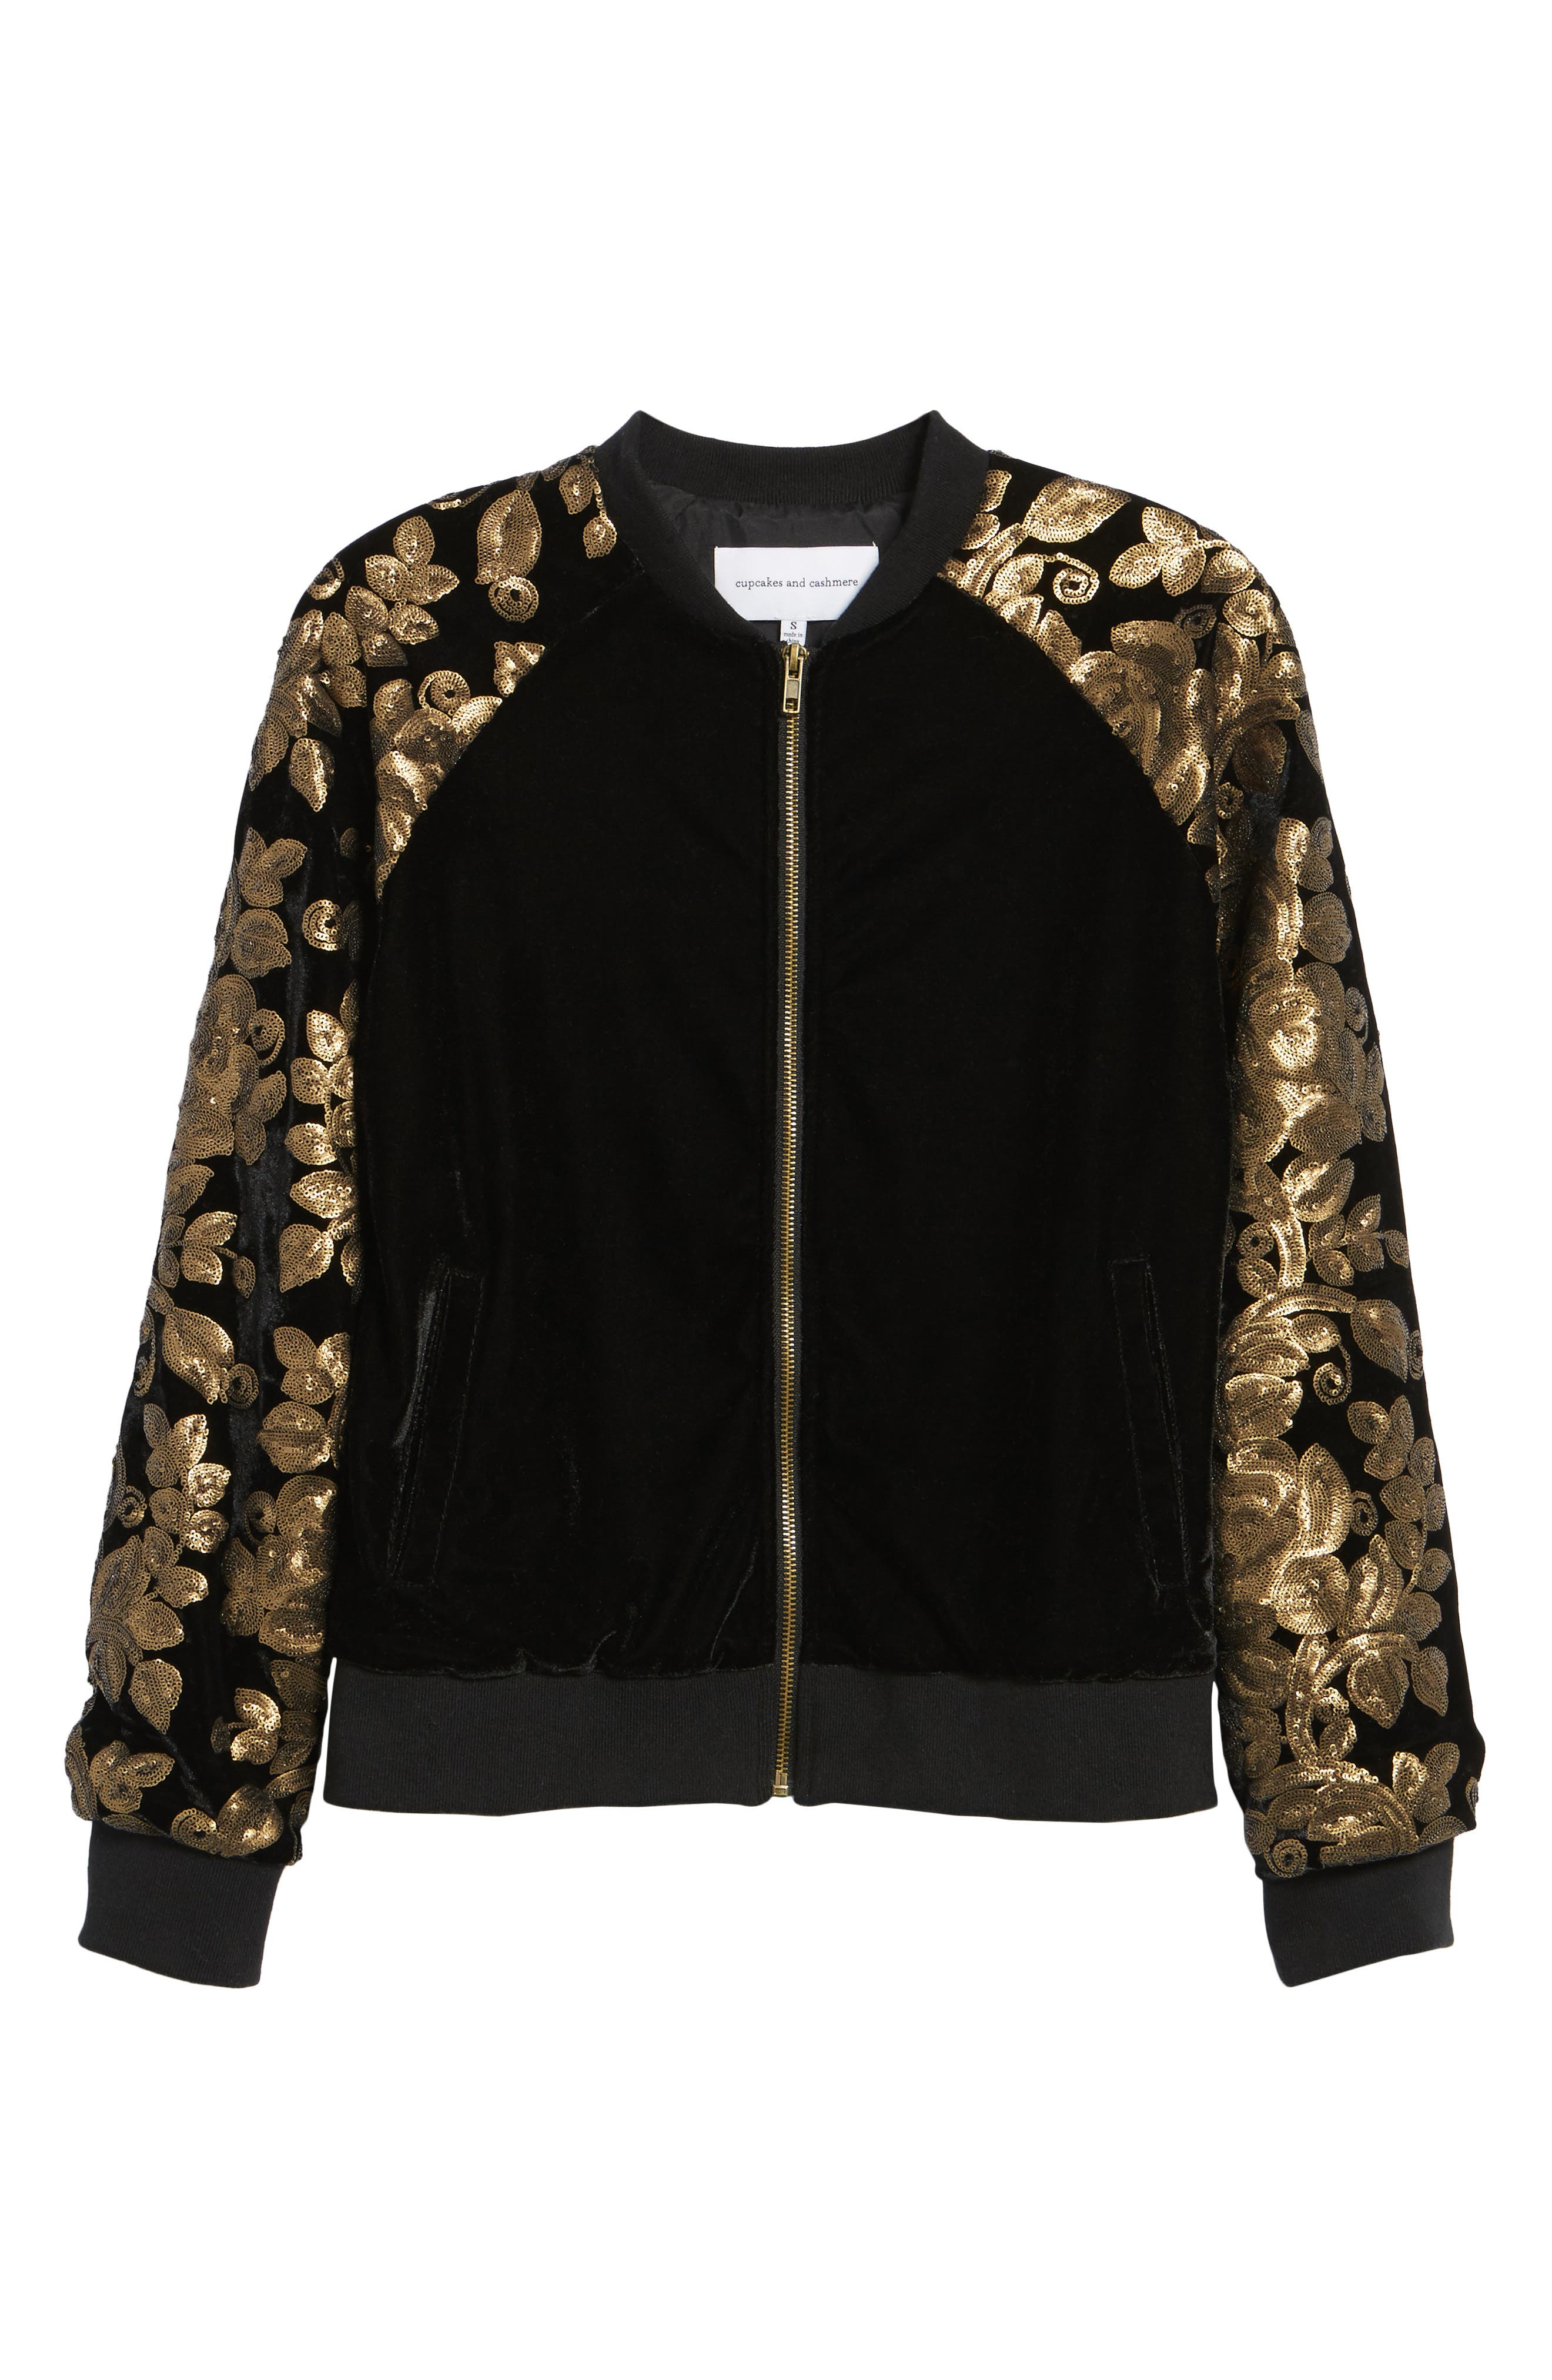 Axwell Bomber Jacket,                             Alternate thumbnail 5, color,                             001